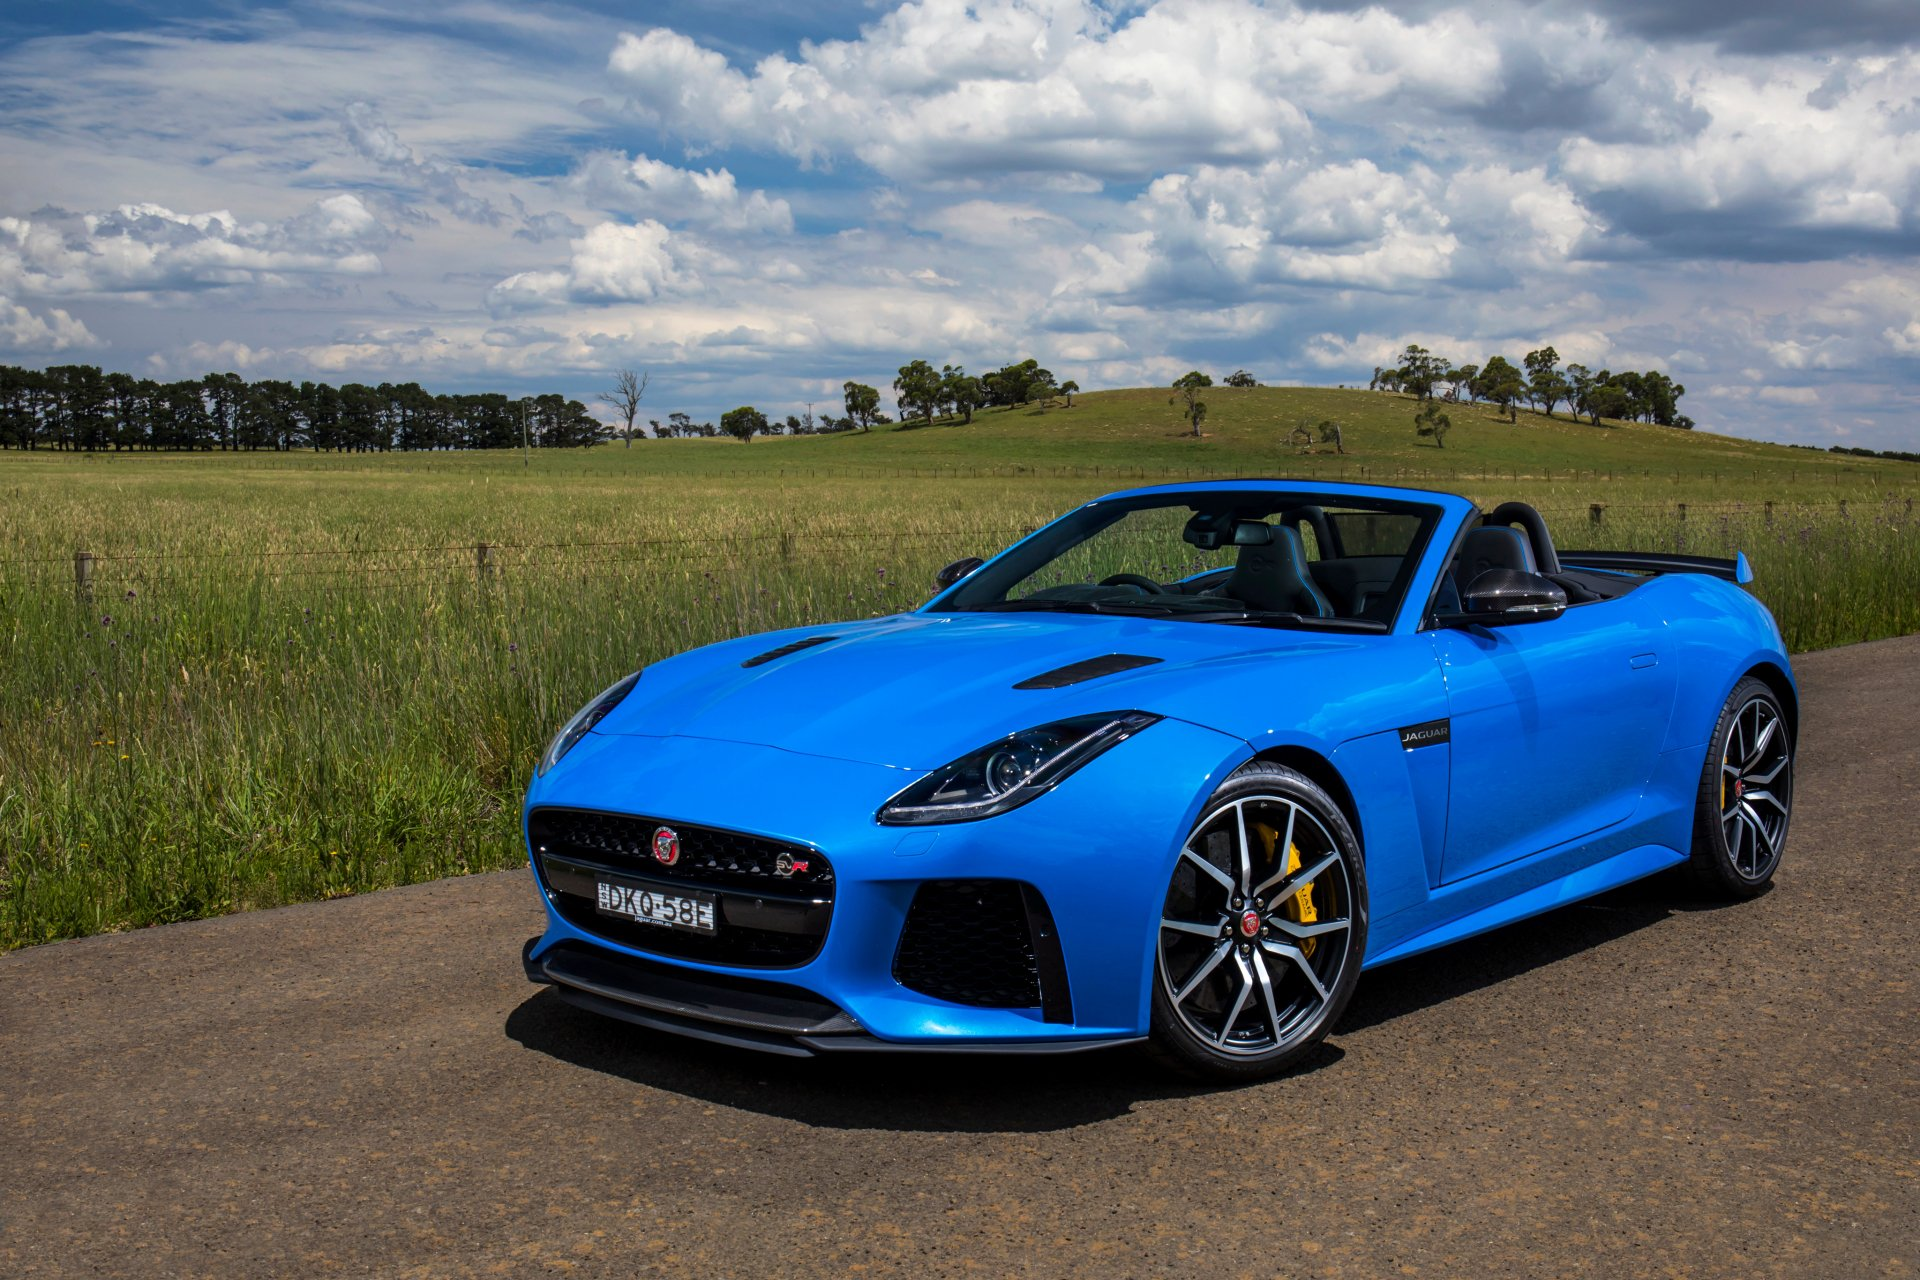 Jaguar F-Type 4k Ultra HD Wallpaper | Background Image ...